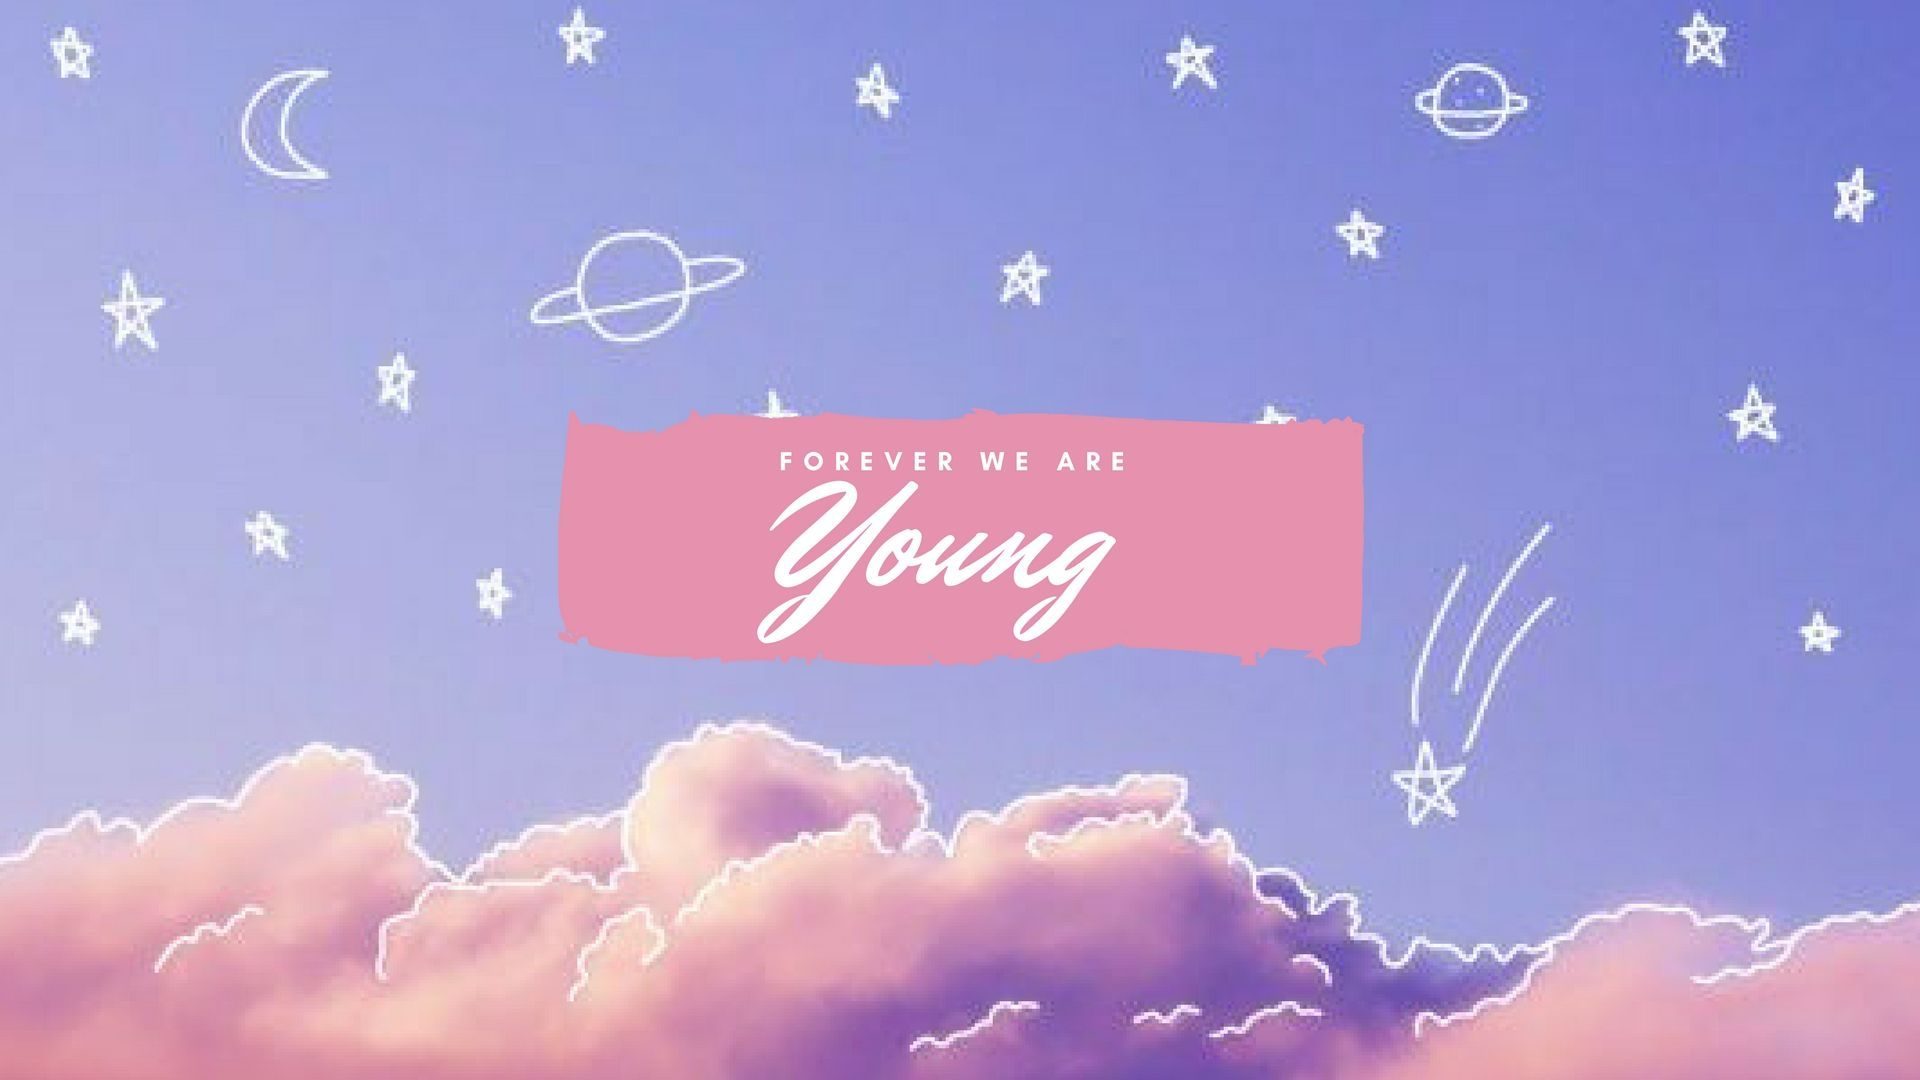 Forever We Are Young Bts Bts Wallpaper For Desktop Computer Bts Computerstechn In 2020 Bts Wallpaper Desktop Bts Laptop Wallpaper Aesthetic Desktop Wallpaper